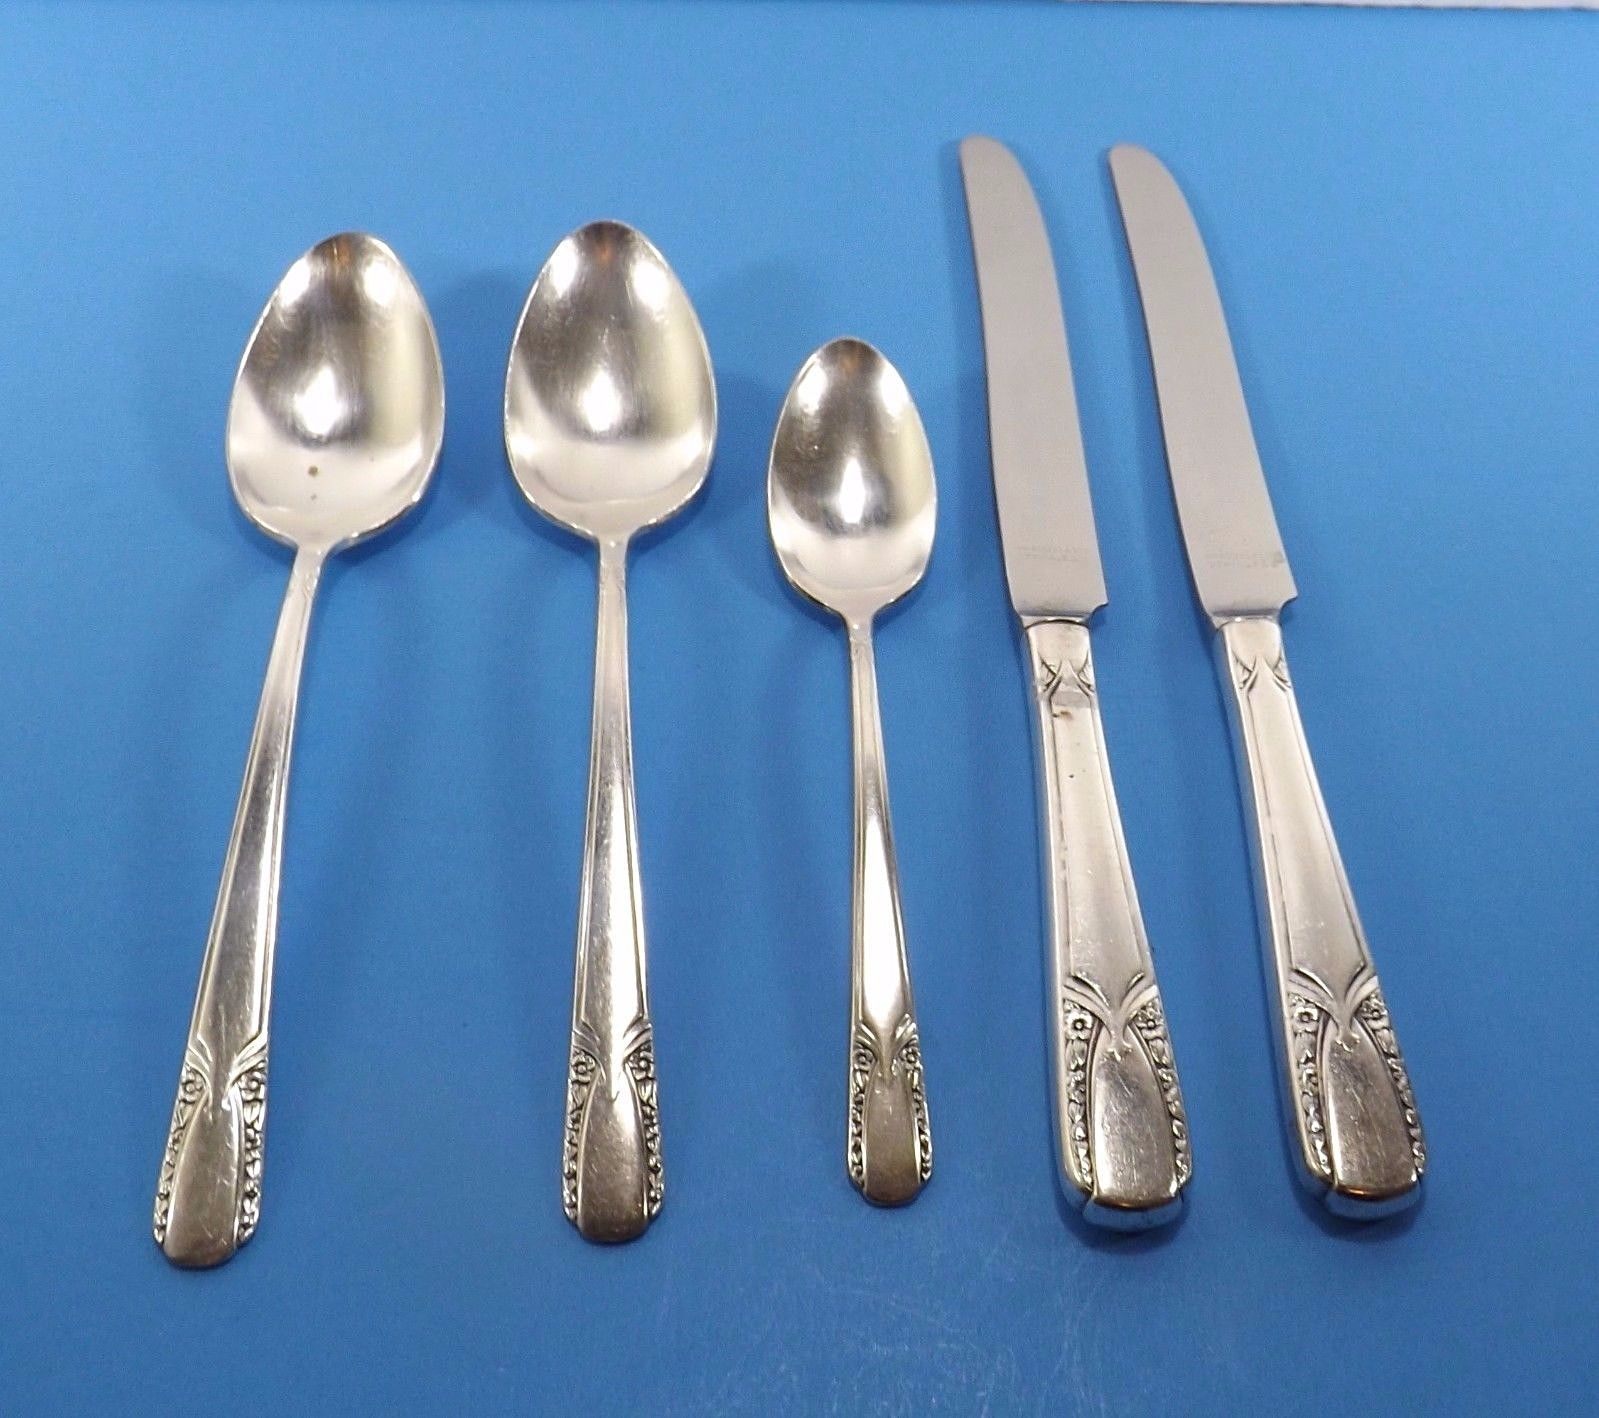 Primary image for Rogers Talisman Silverplate Lot 5 Pcs- 2 Soup Spoons 2 Dinner Knives 1 Teaspoon